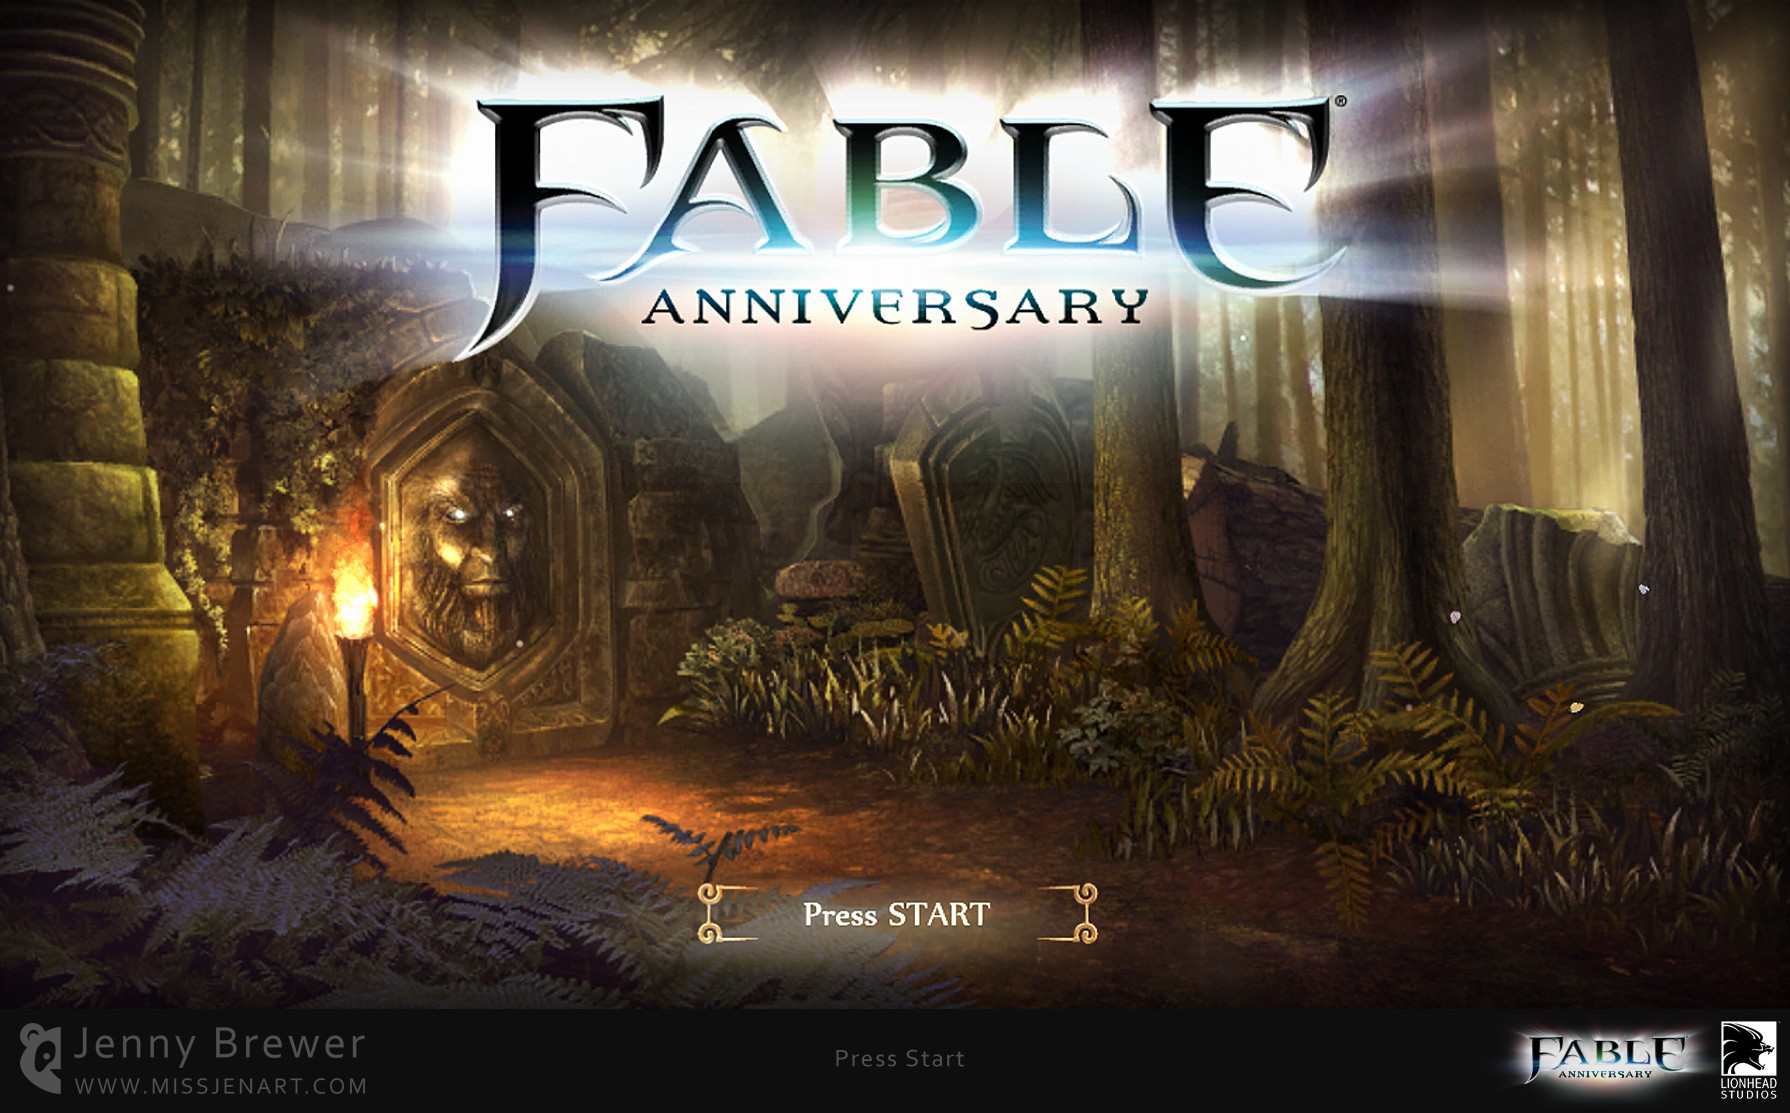 One of the first screens players are greeted with in Fable Anniversary is the Press Start screen.  There are 4 possible scenes which are randomly displayed each time you load the game, each with their own subtle animations to bring the environment to life